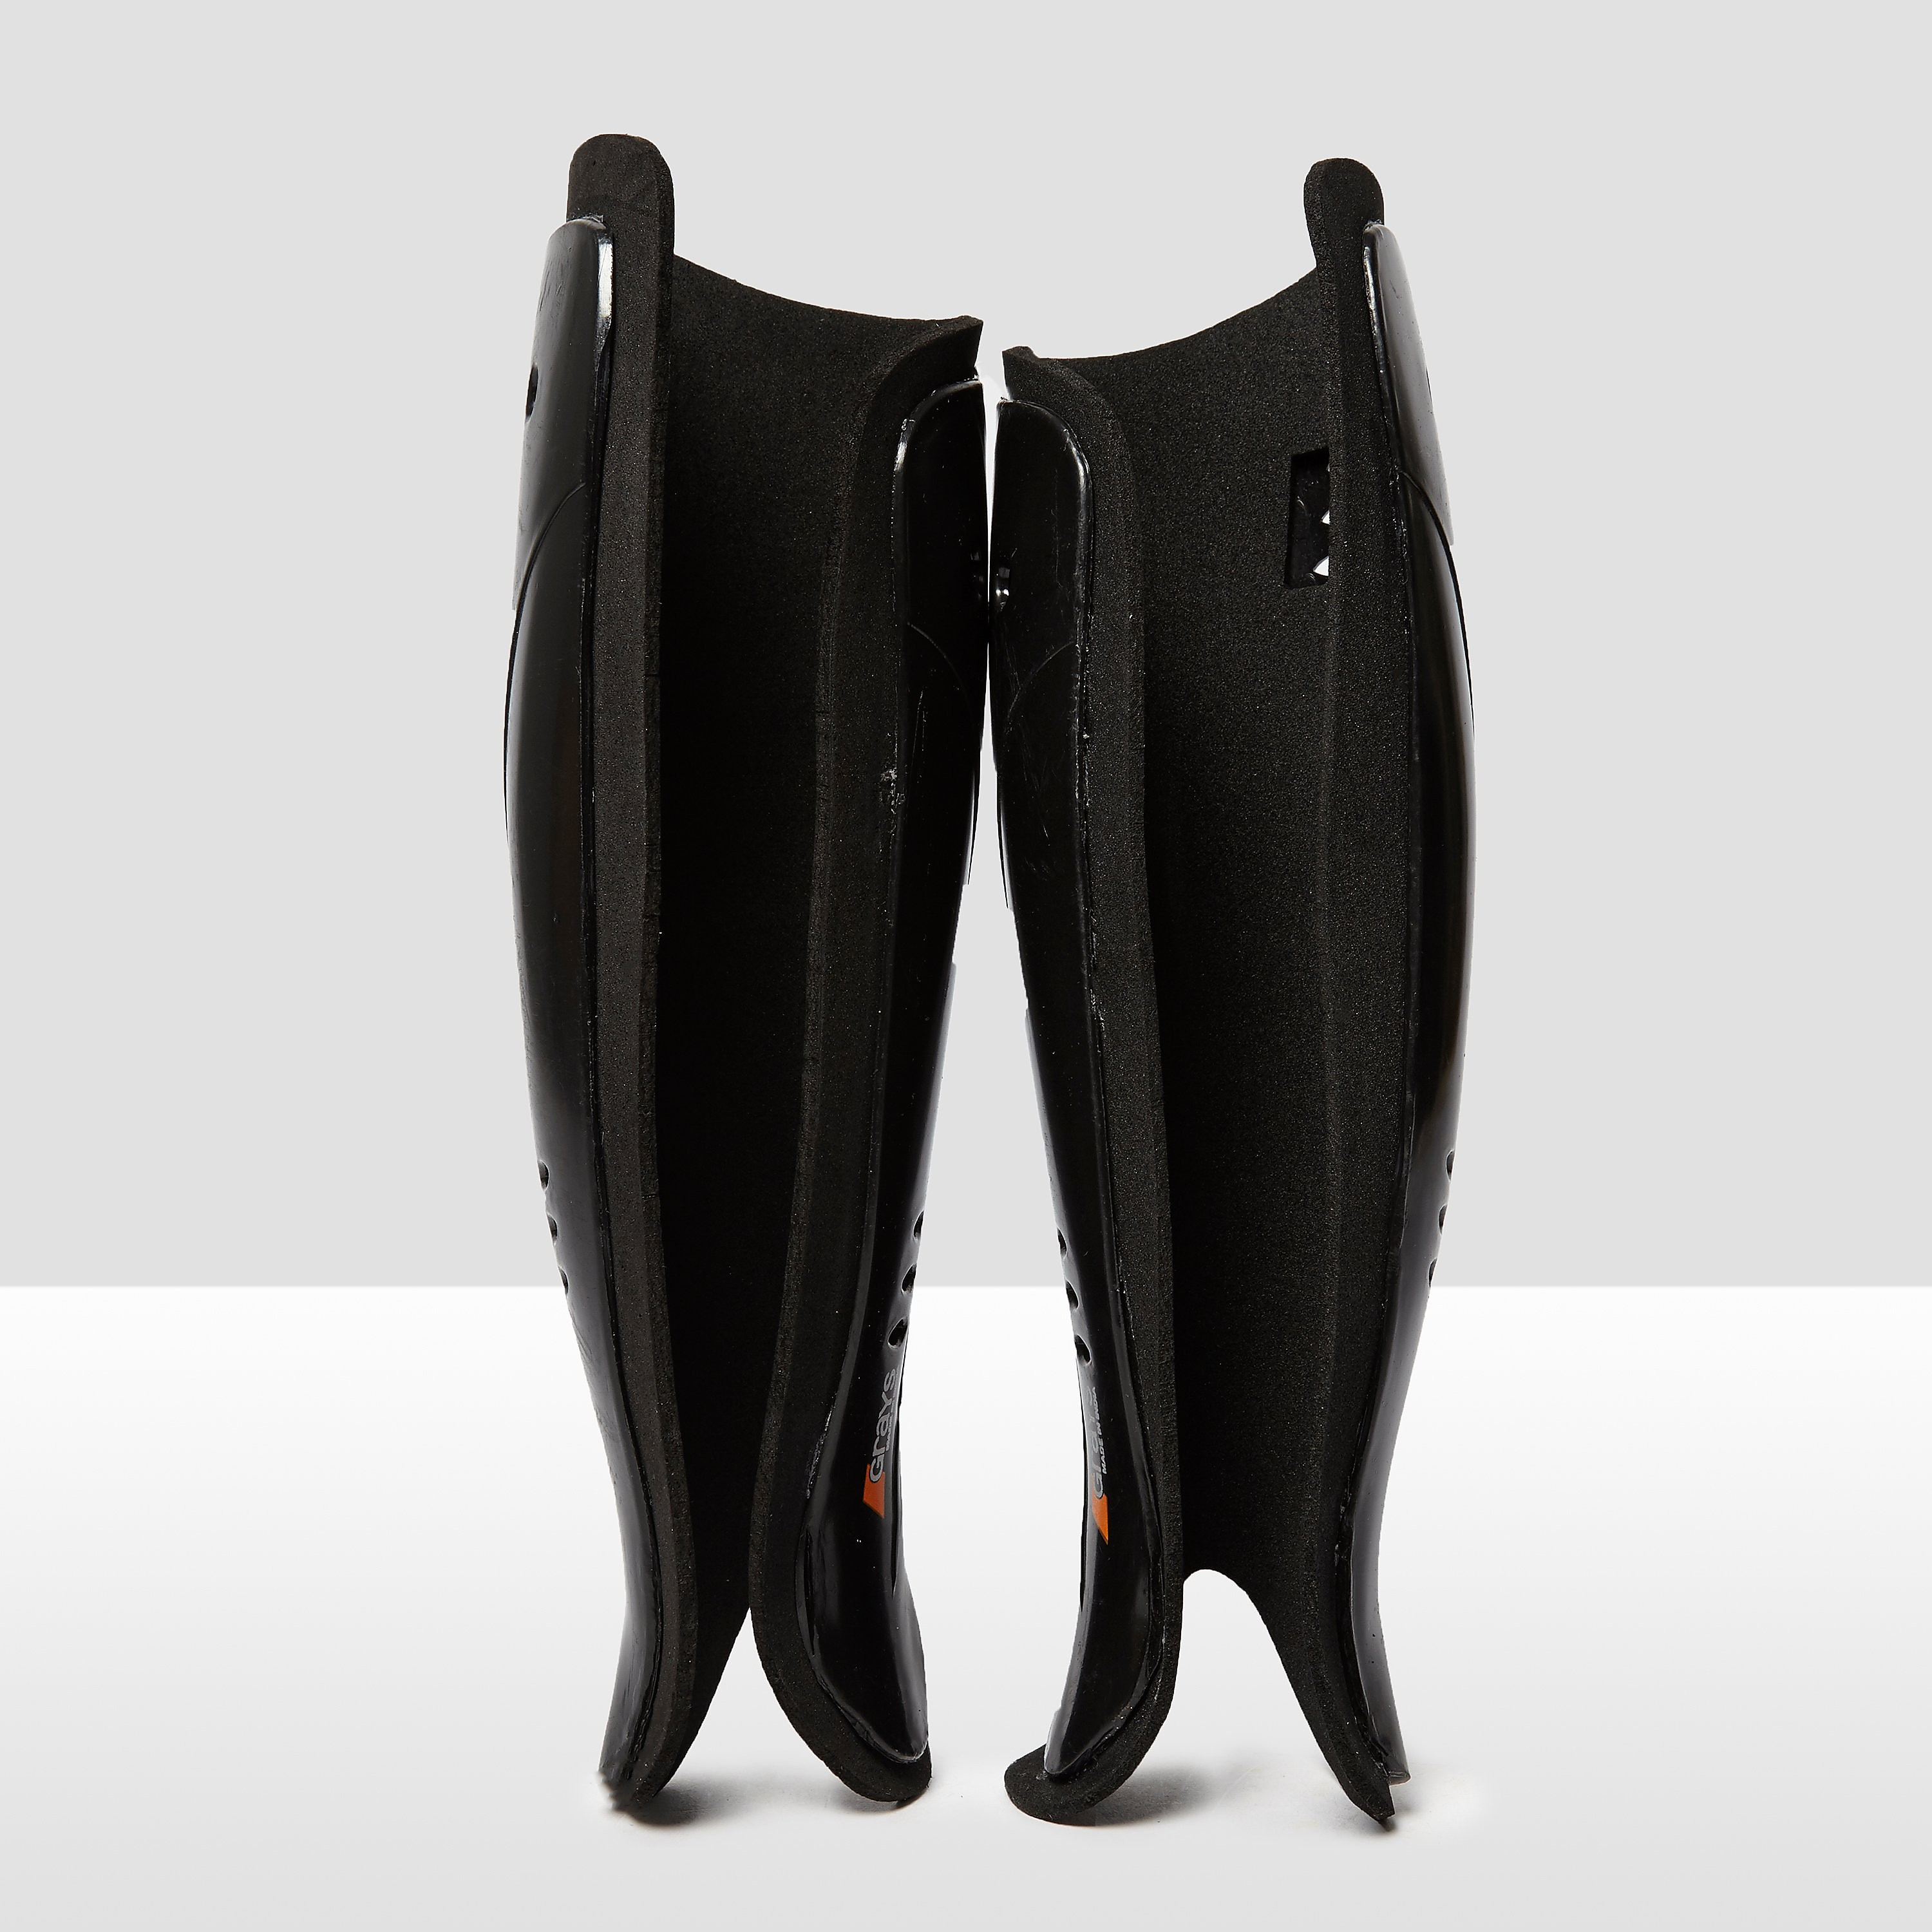 Grays G500 Shin Guards